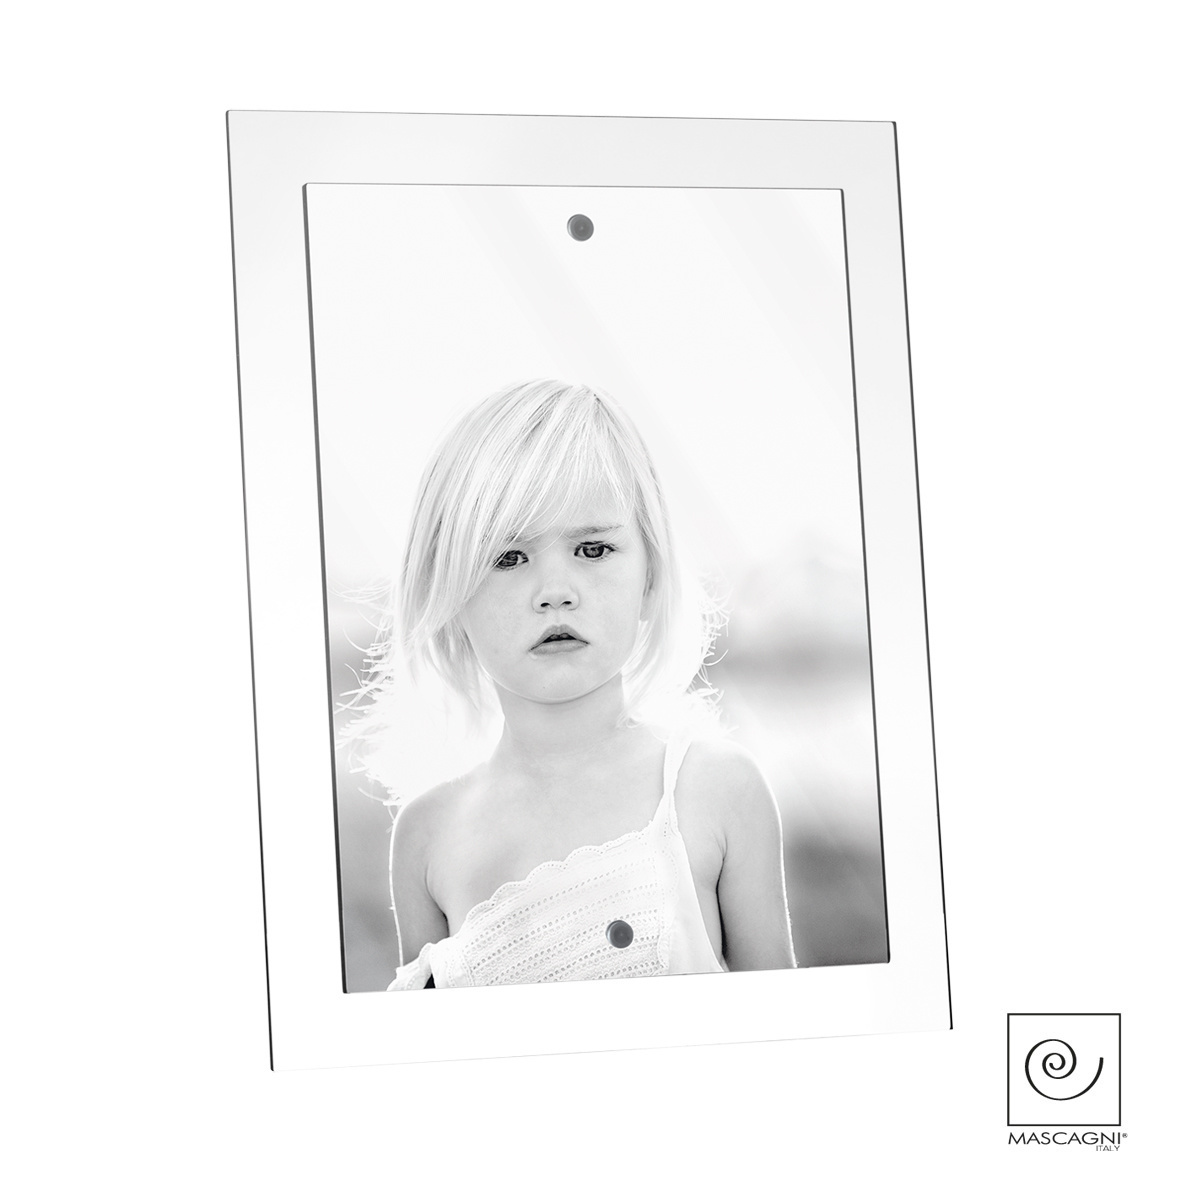 Art Mascagni A511 PHOTO FRAME 13X18 - COL.WHITE